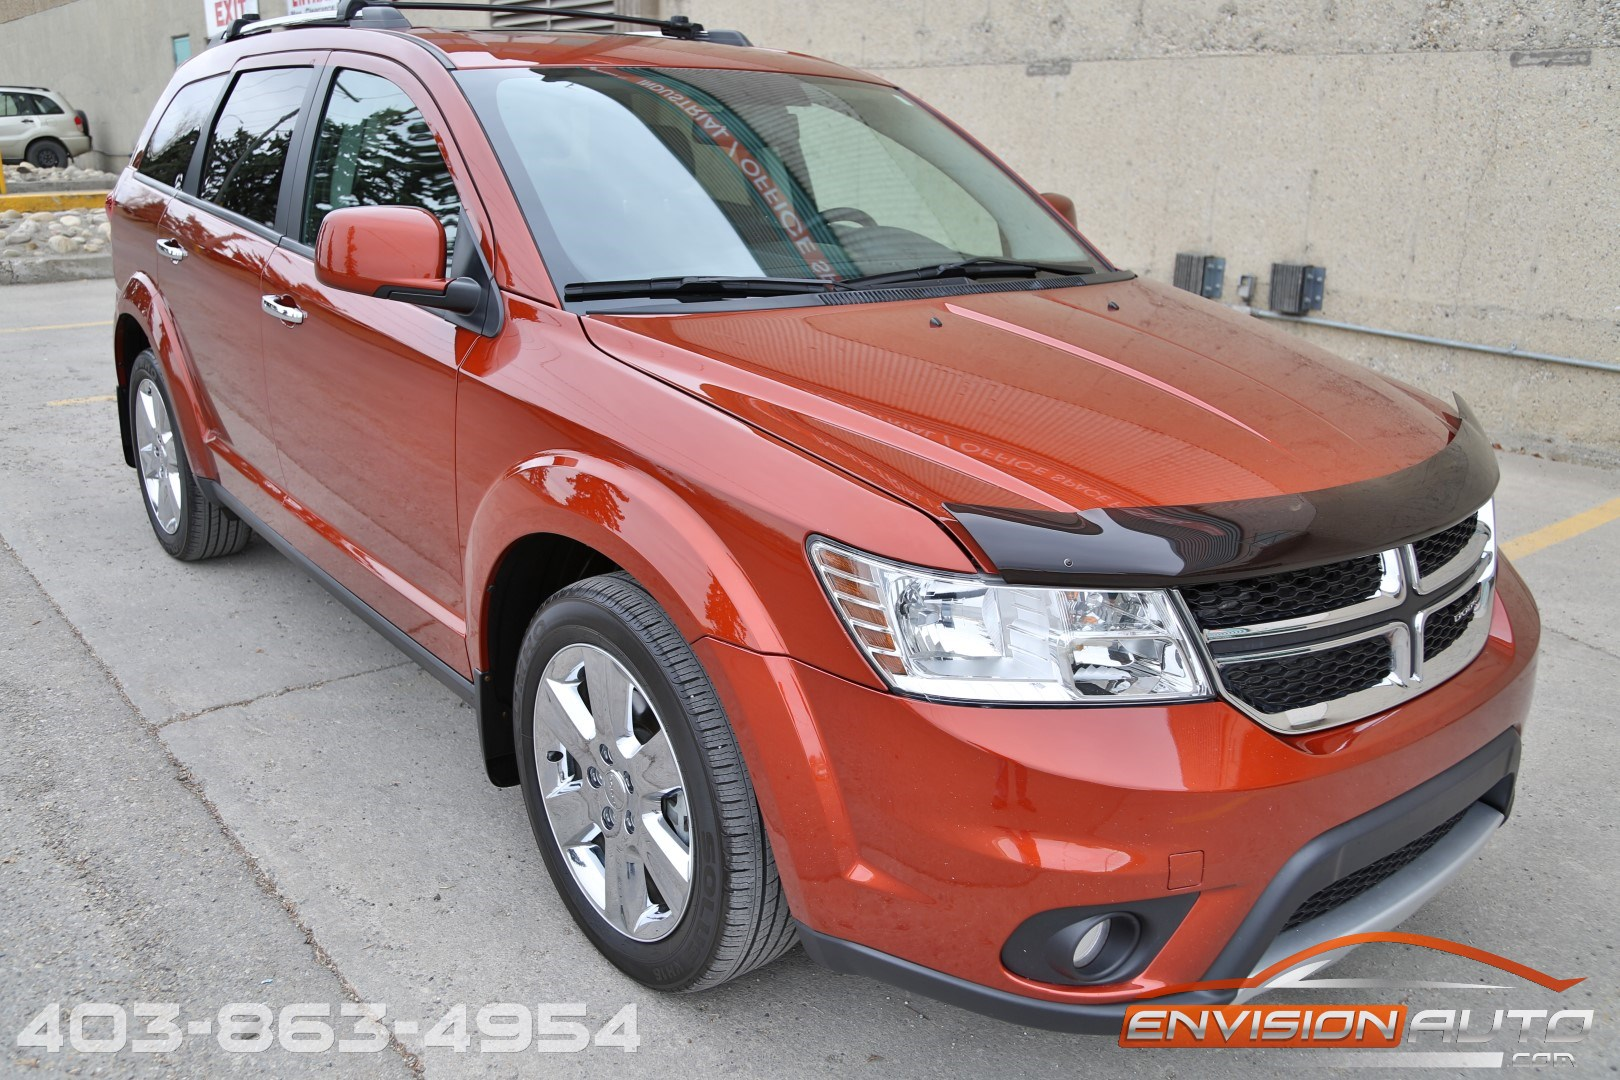 2013 dodge journey r t awd envision auto. Black Bedroom Furniture Sets. Home Design Ideas